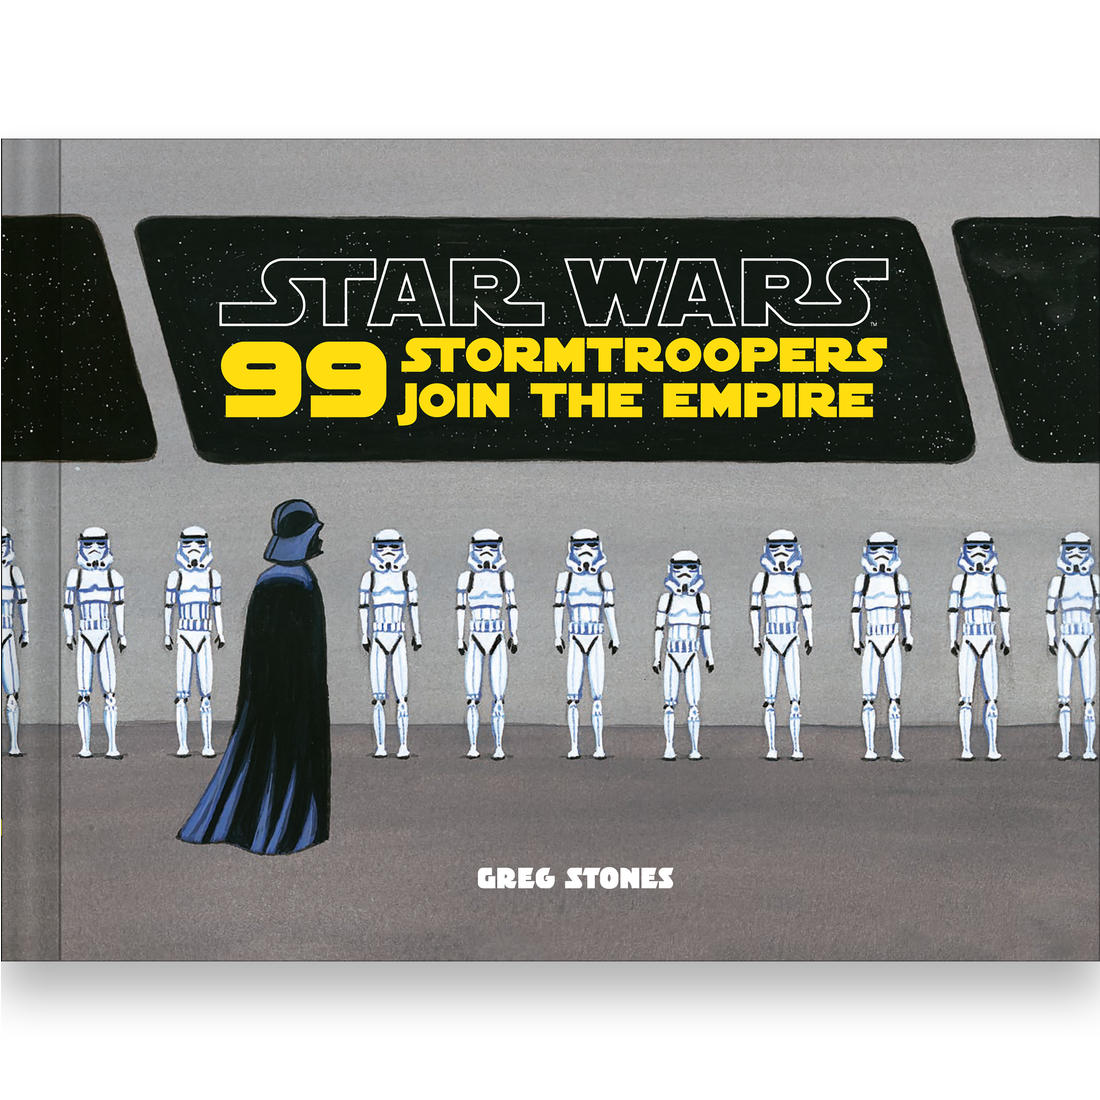 Star Wars - 99 Stormtroopers Join the Empire | getDigital